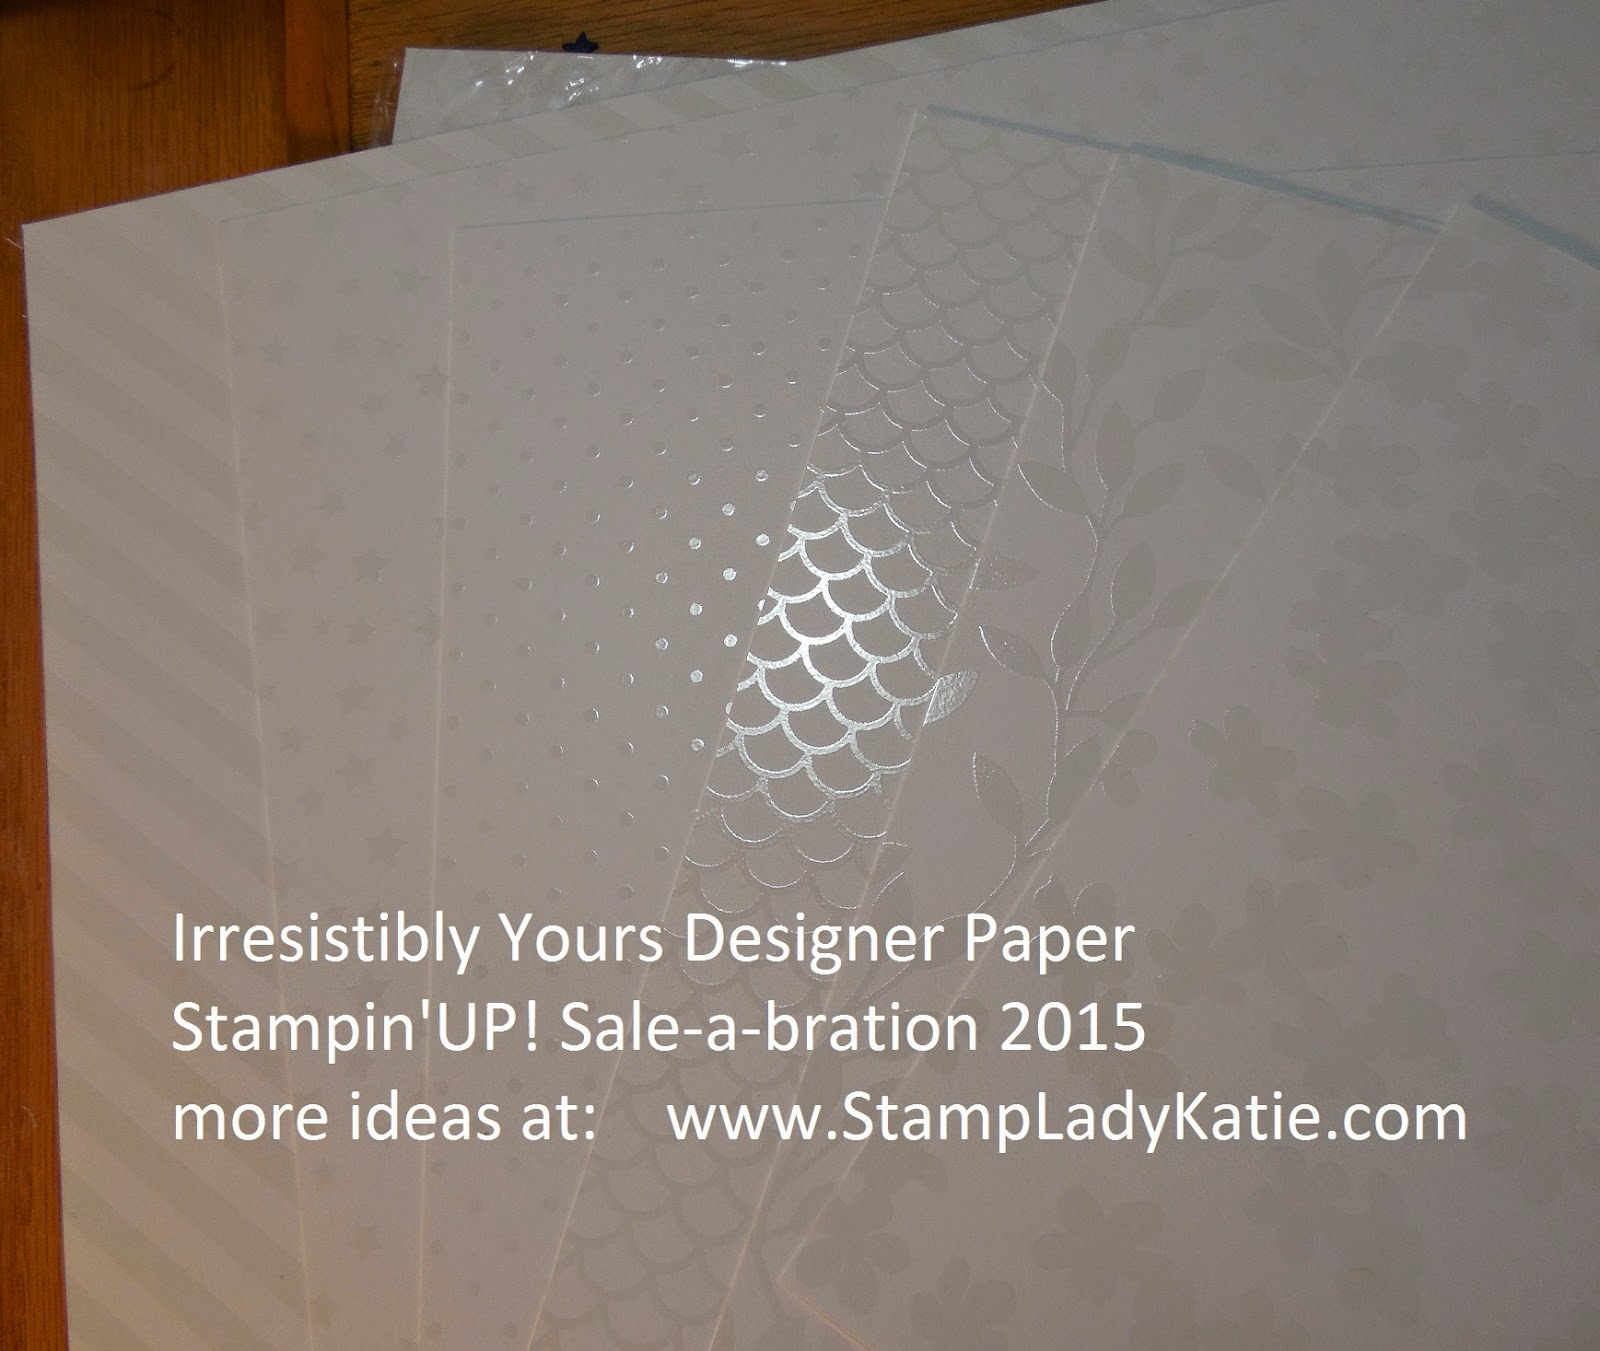 pre-embossed Designer Paper - Stampin'UP! 2015 Sale-a-bration option